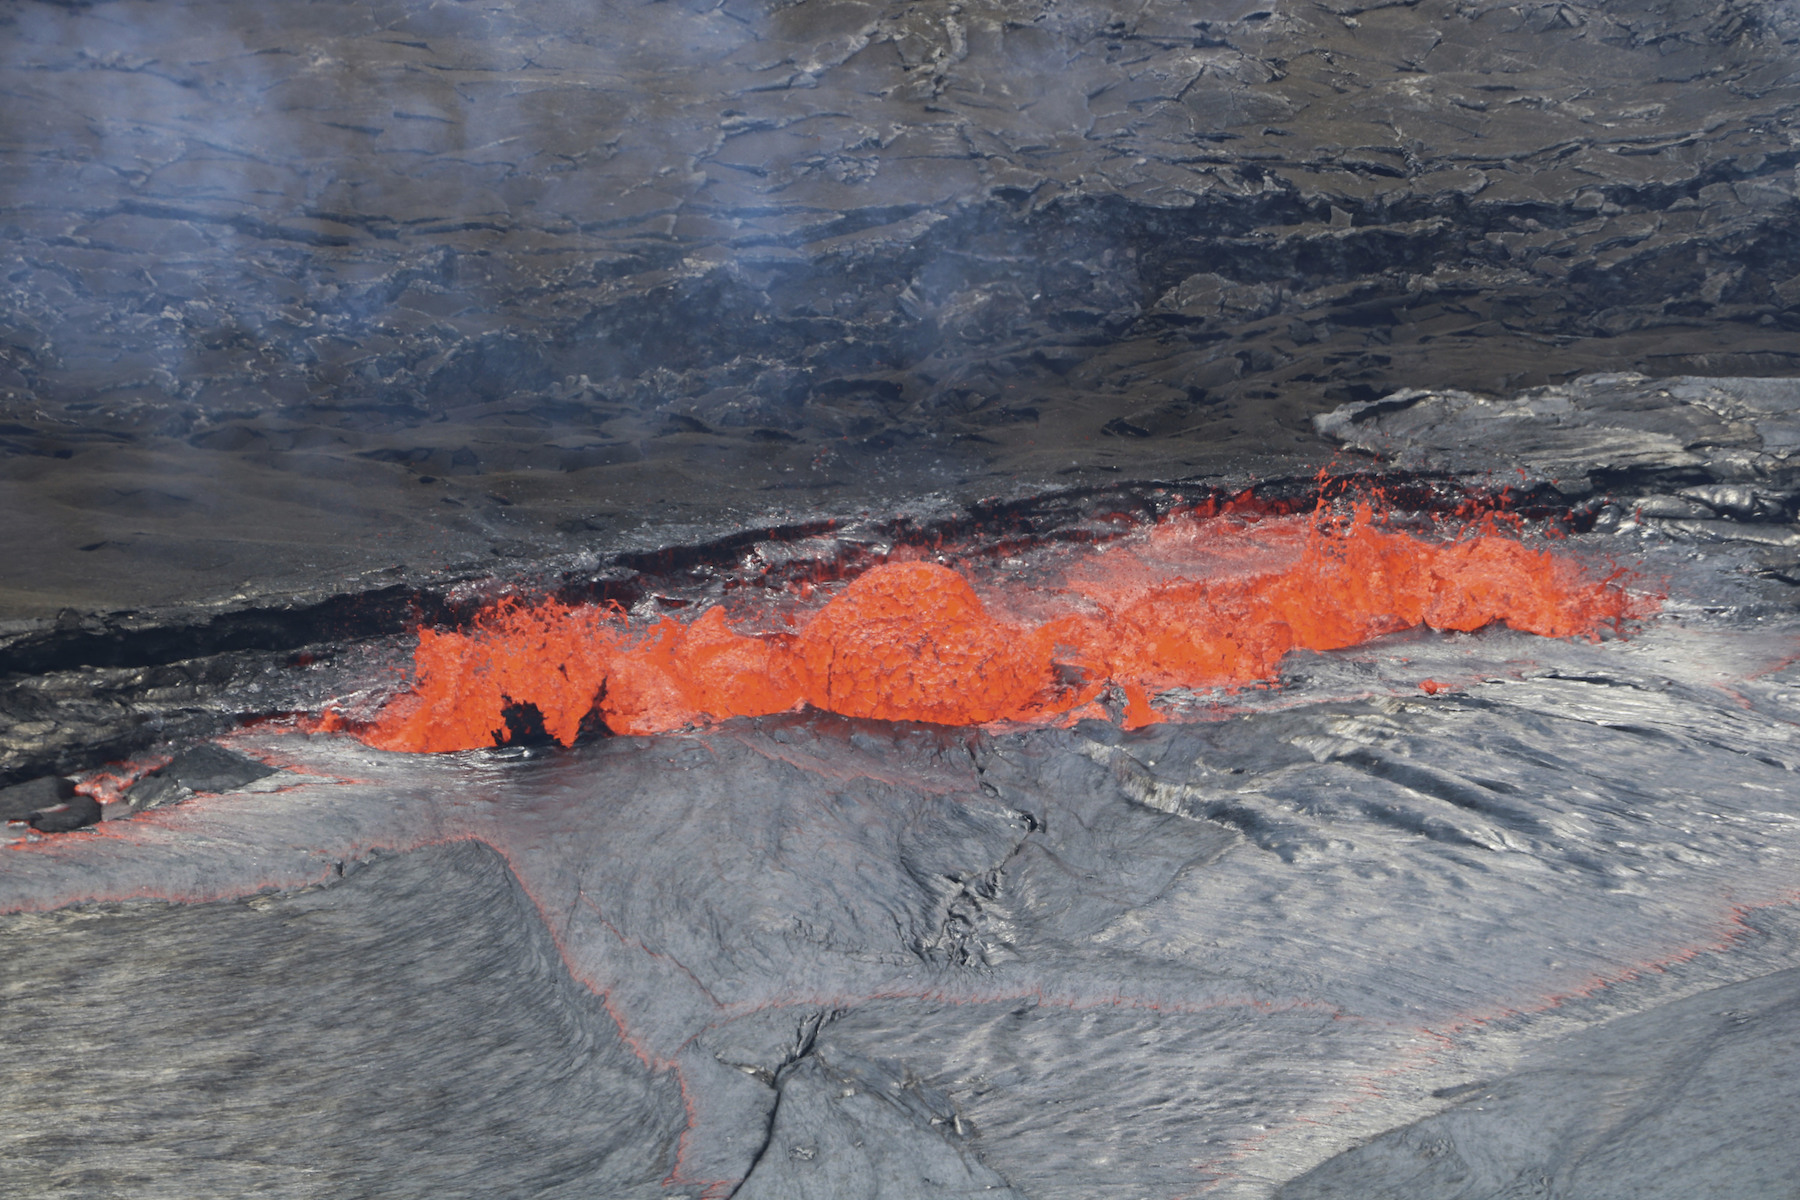 "<div class=""meta image-caption""><div class=""origin-logo origin-image ap""><span>AP</span></div><span class=""caption-text"">In this April 22, 2018, photo provided by the U.S. Geological Survey, lava spatters at the edge of Kilauea's Halemaumau Crater in Hawaii Volcanoes National Park. (USGS/AP)</span></div>"